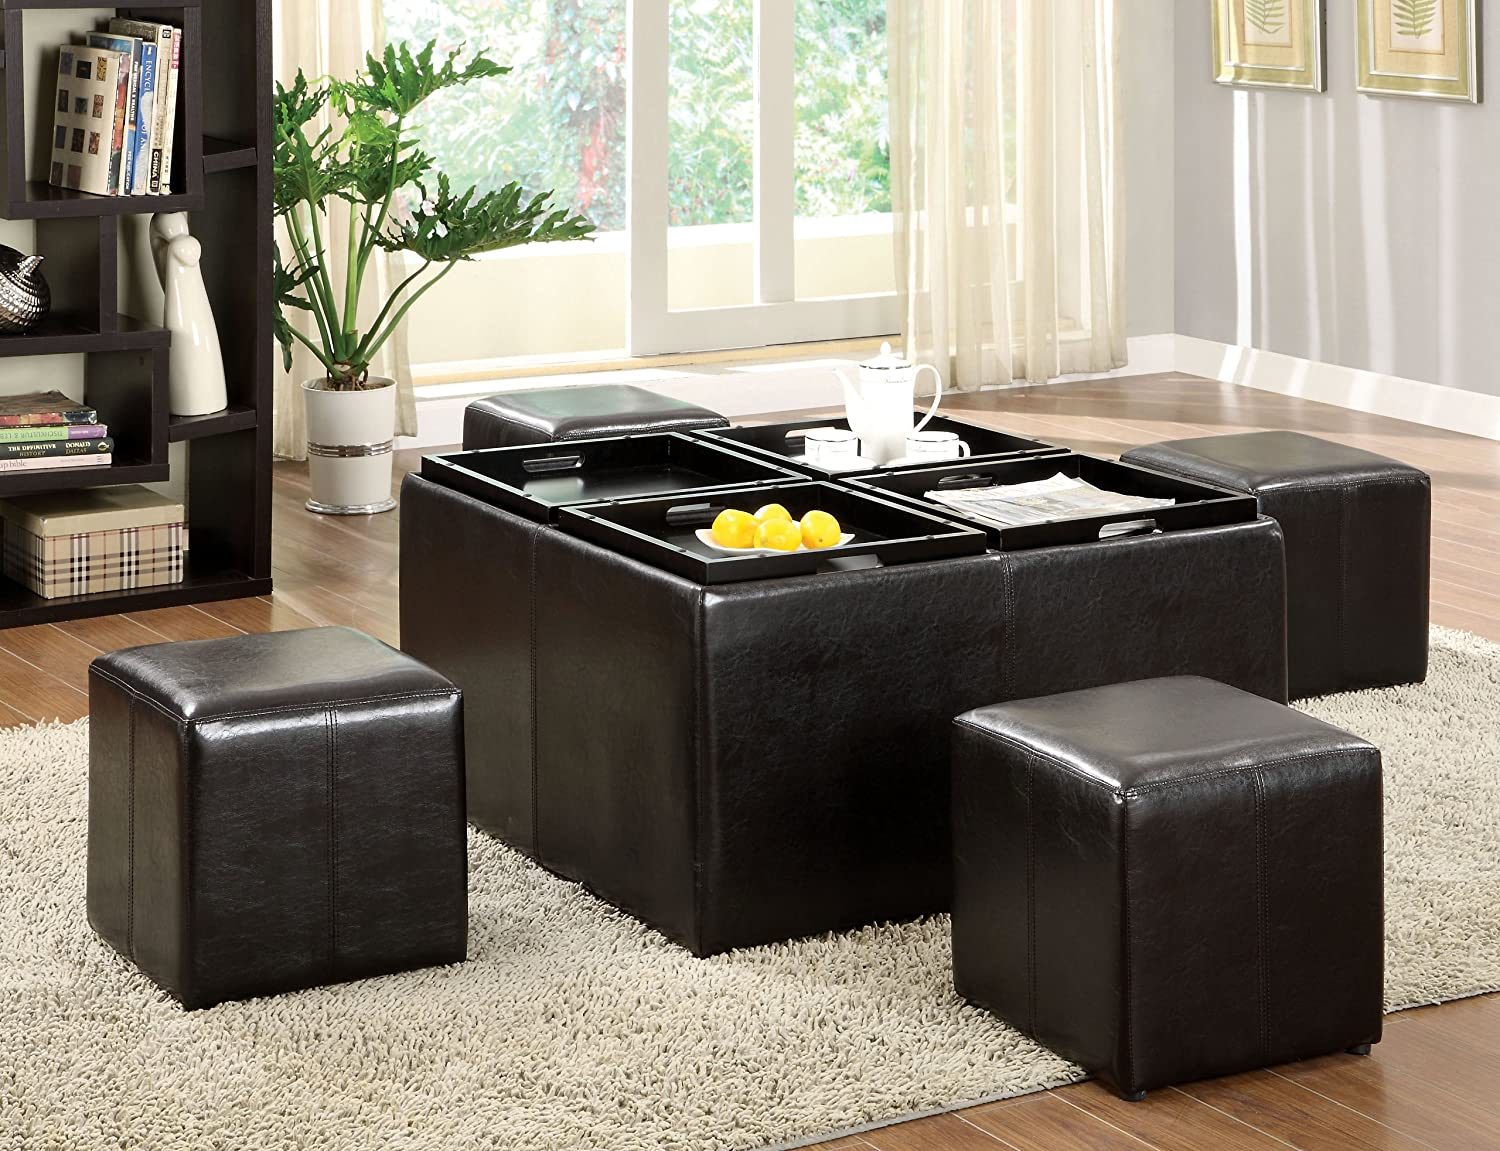 Amazon furniture of america 5 piece cocktail ottoman table amazon furniture of america 5 piece cocktail ottoman table and stool set dark espresso kitchen dining geotapseo Gallery